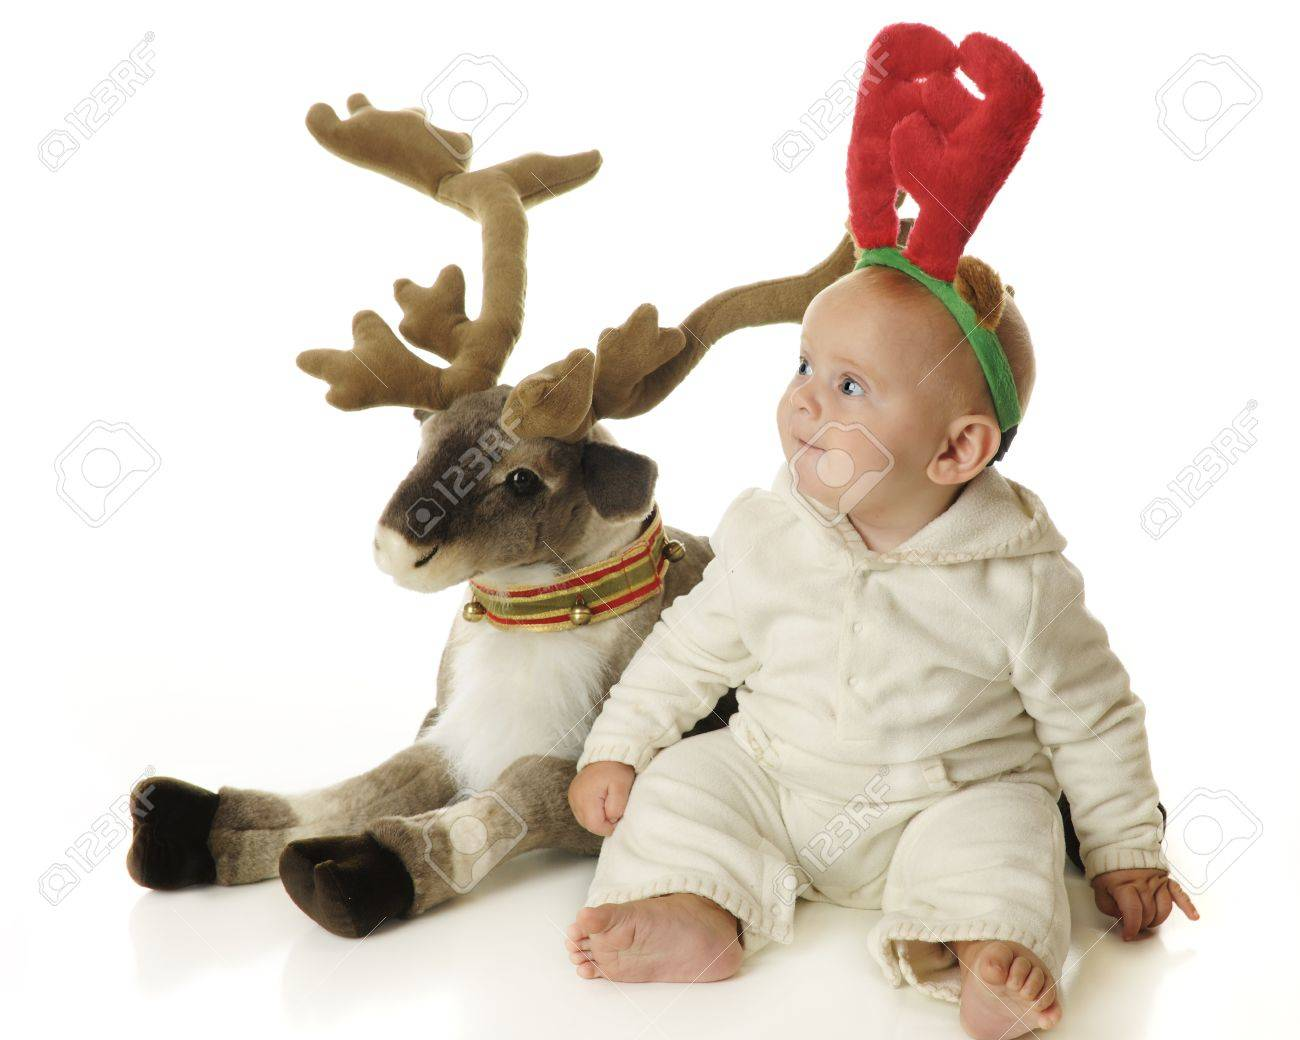 White Baby Reindeer An adorable baby boy wearing